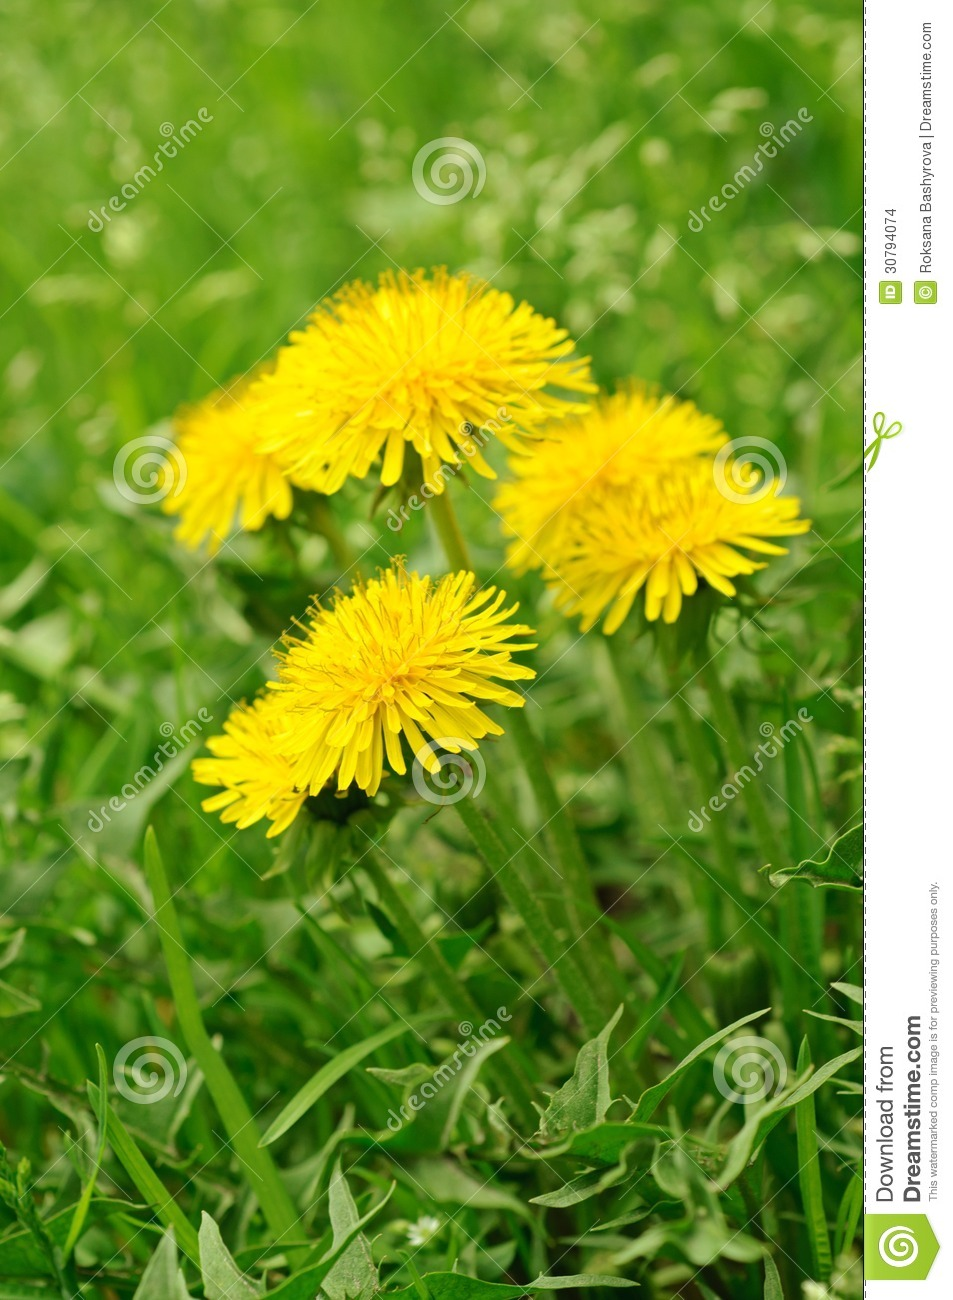 Dandelion flower stock photo image of landscape fresh 30794074 dandelion yellow flower growing in spring time on the green grass mightylinksfo